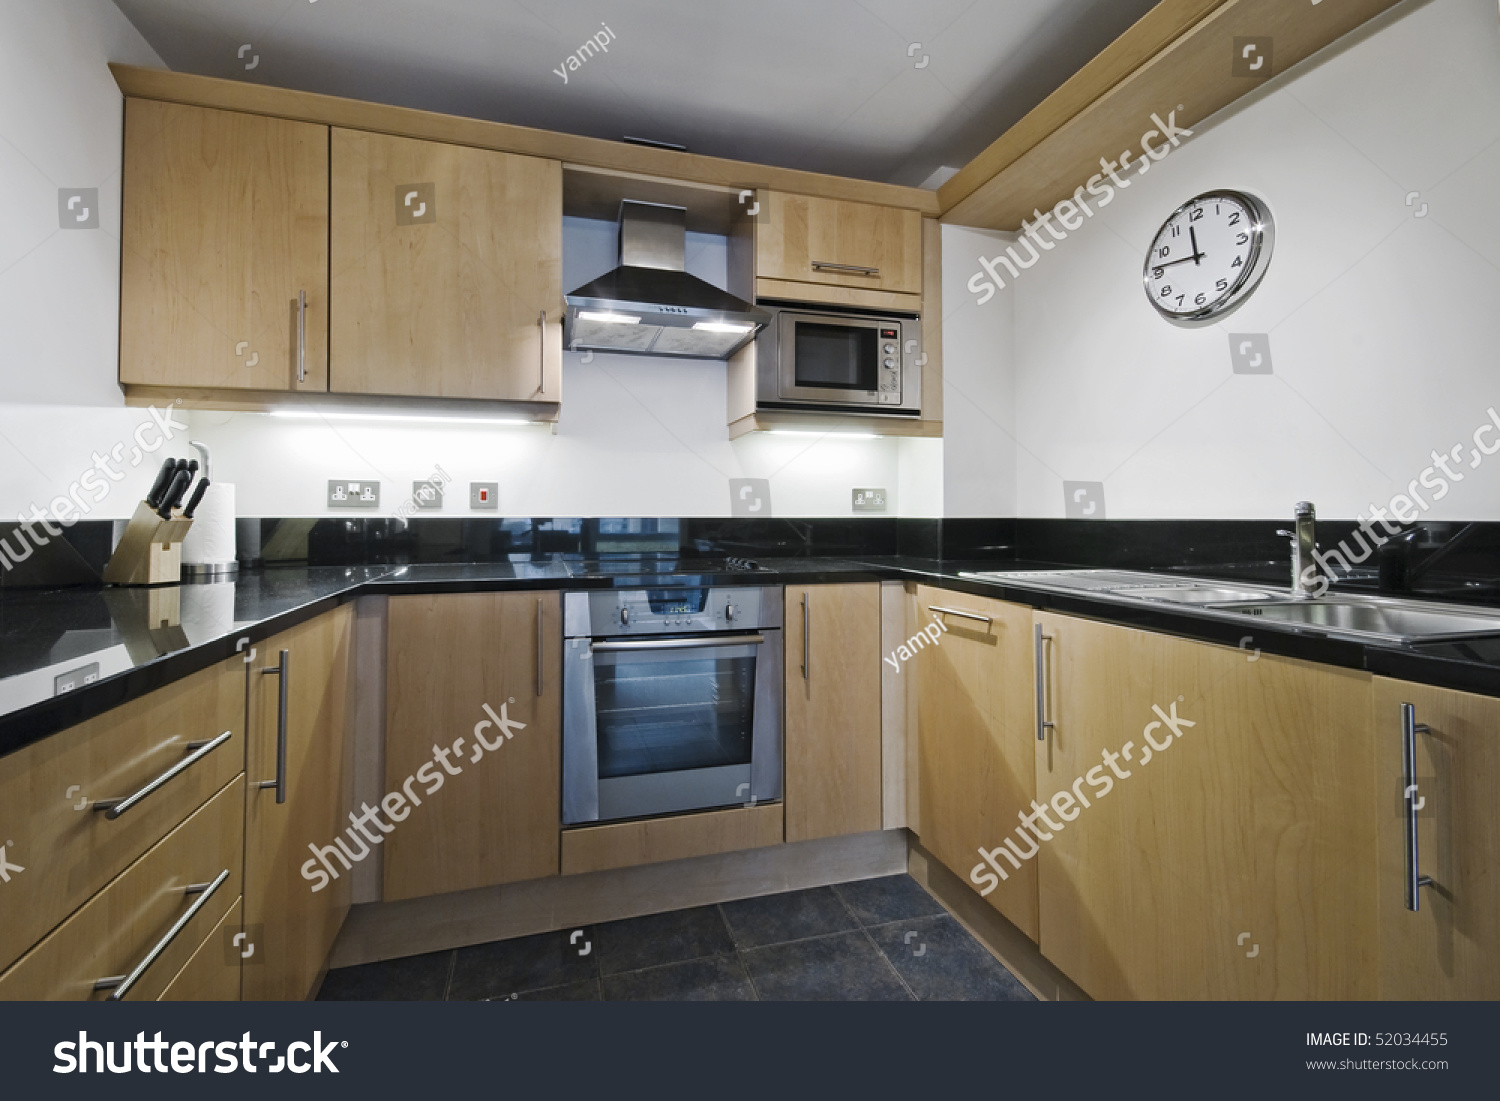 Granite Worktop Kitchen Modern Kitchen Counter With Hard Wood Finish And Granite Worktop